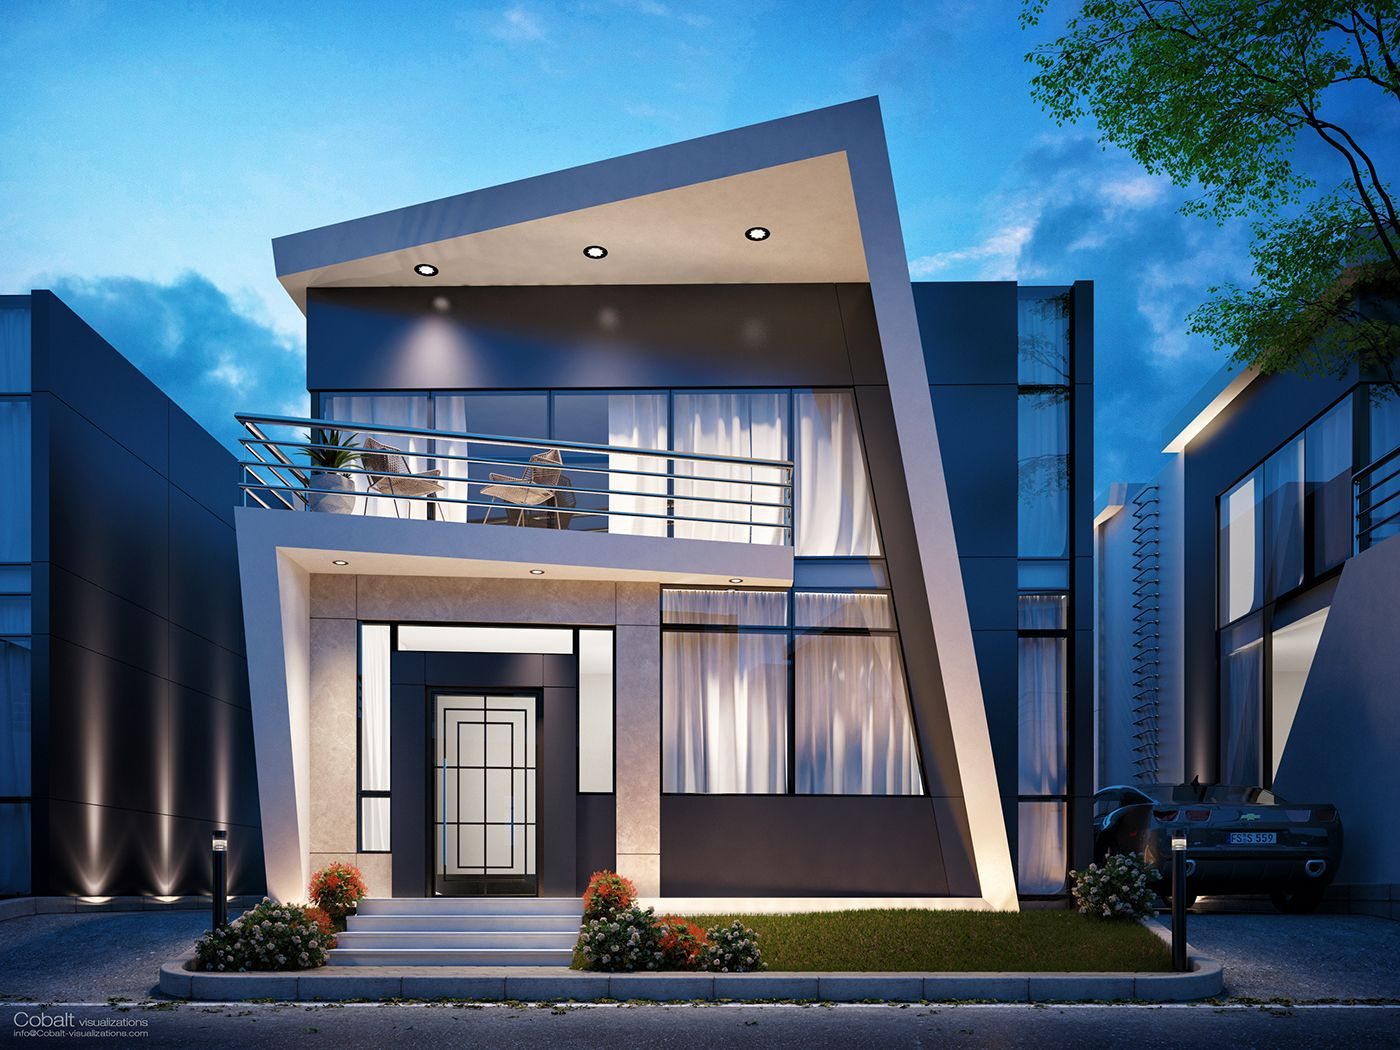 villa type visualization for lifeview compound in shorouk  egypt